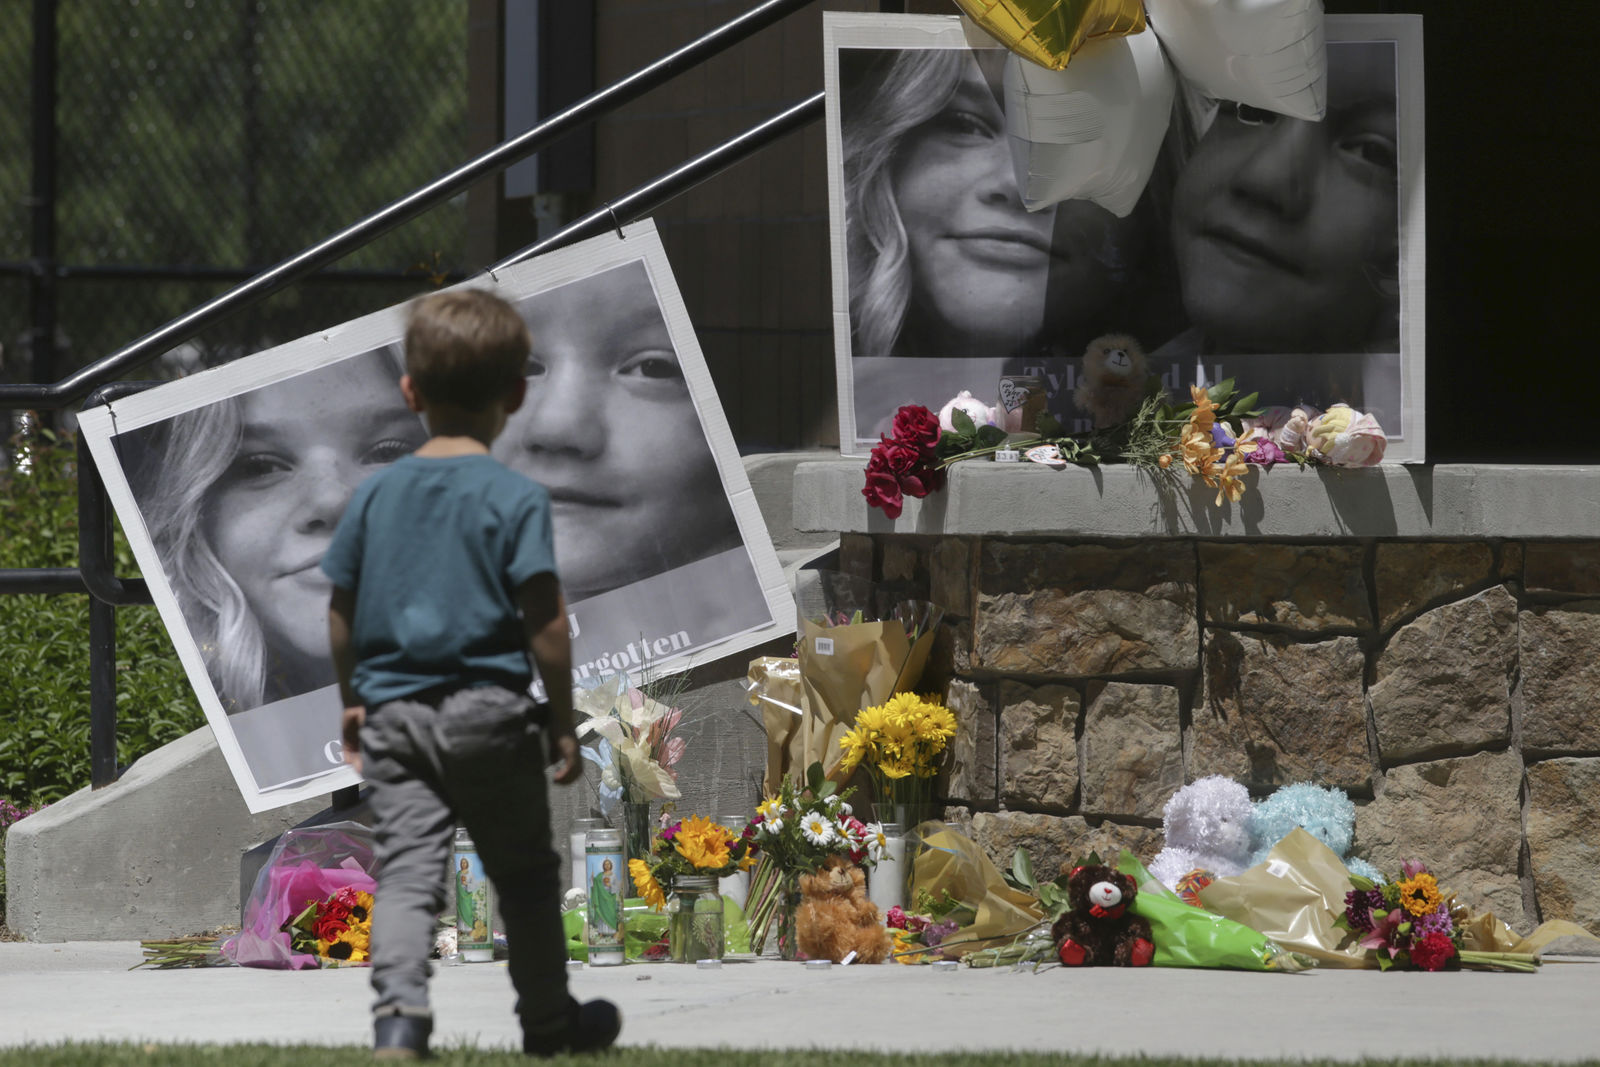 "FILE - In this June 11, 2020, file photo, a boy looks at a memorial for Tylee Ryan, 17, and Joshua ""JJ"" Vallow, 7, at Porter Park in Rexburg, Idaho. An Idaho prosecutor is expected Monday, Aug. 3, 2020, to begin sketching out his case against an Idaho couple at the center of a bizarre missing children's case that ended in tragedy when their bodies were found buried on a rural eastern Idaho property earlier this year. (John Roark/The Idaho Post-Register via AP, File)"